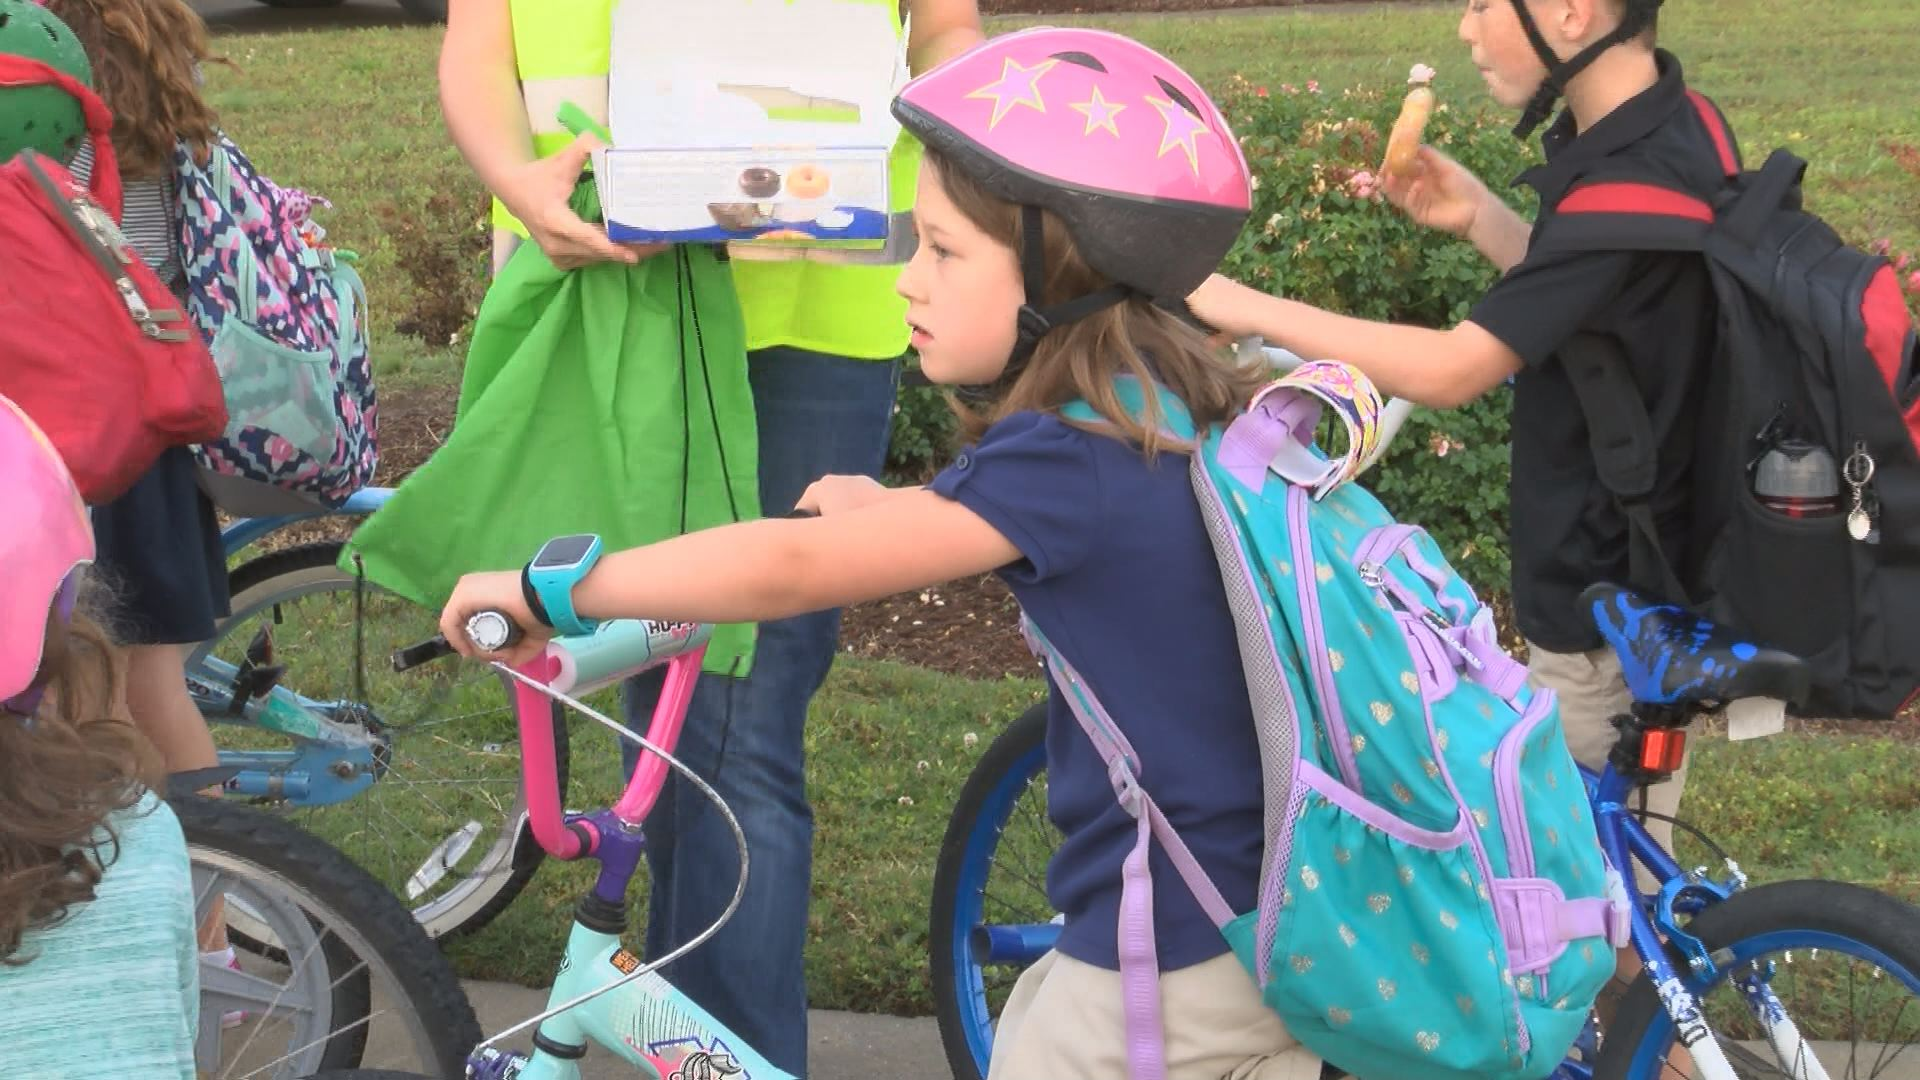 Local schools to participate in National Bike to School Day